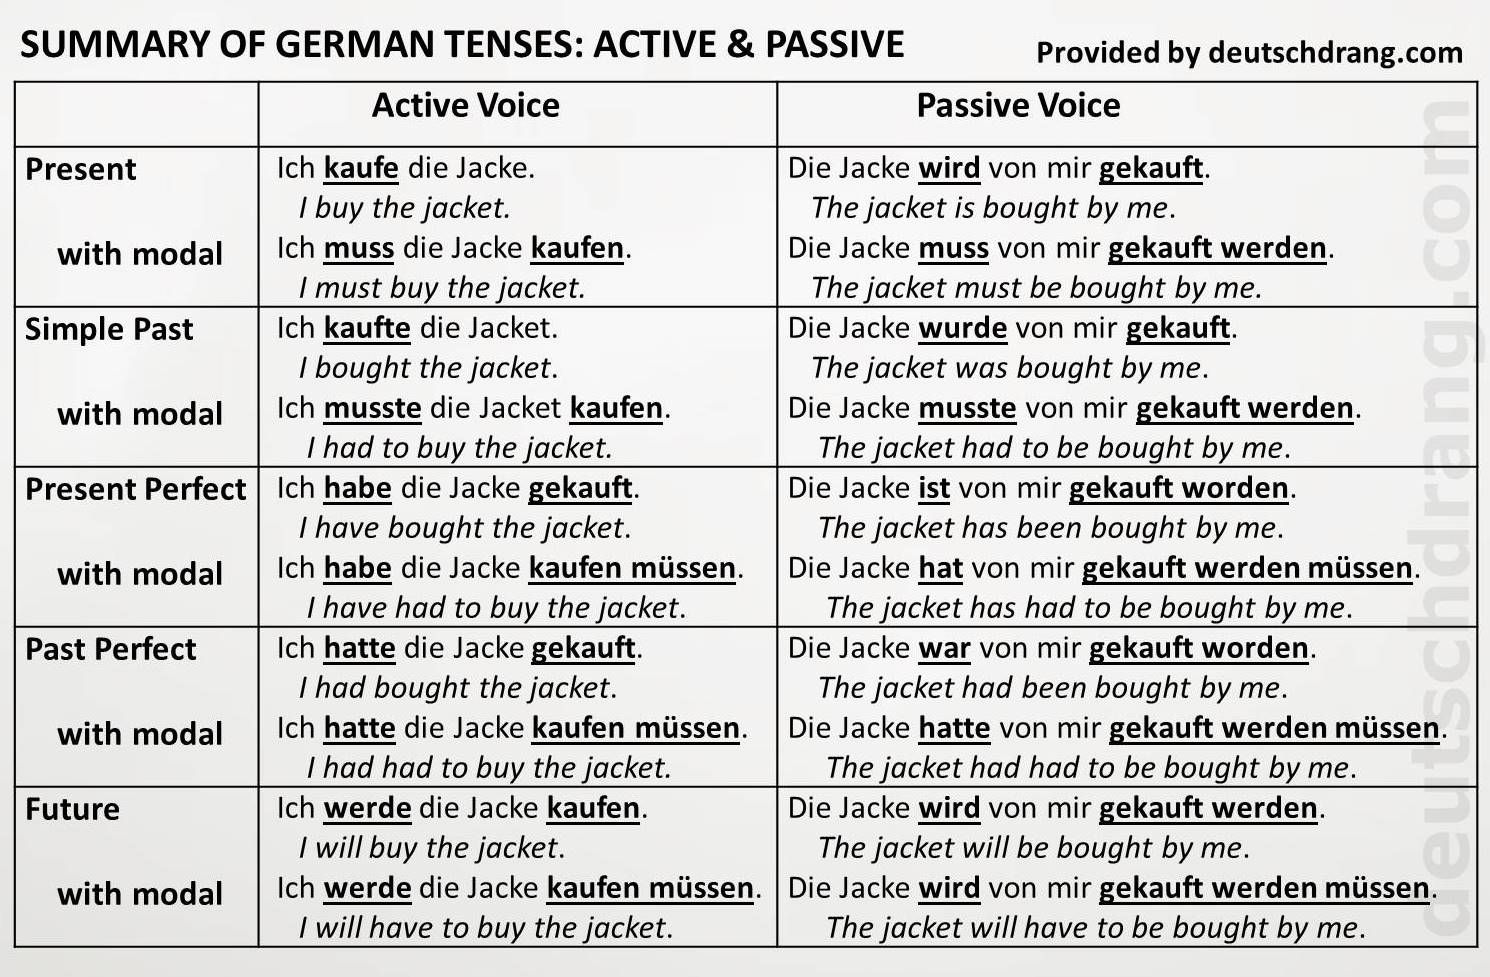 Advanced Level Worksheet For Active And Passive Voice Changing Sentences From Active To Passive